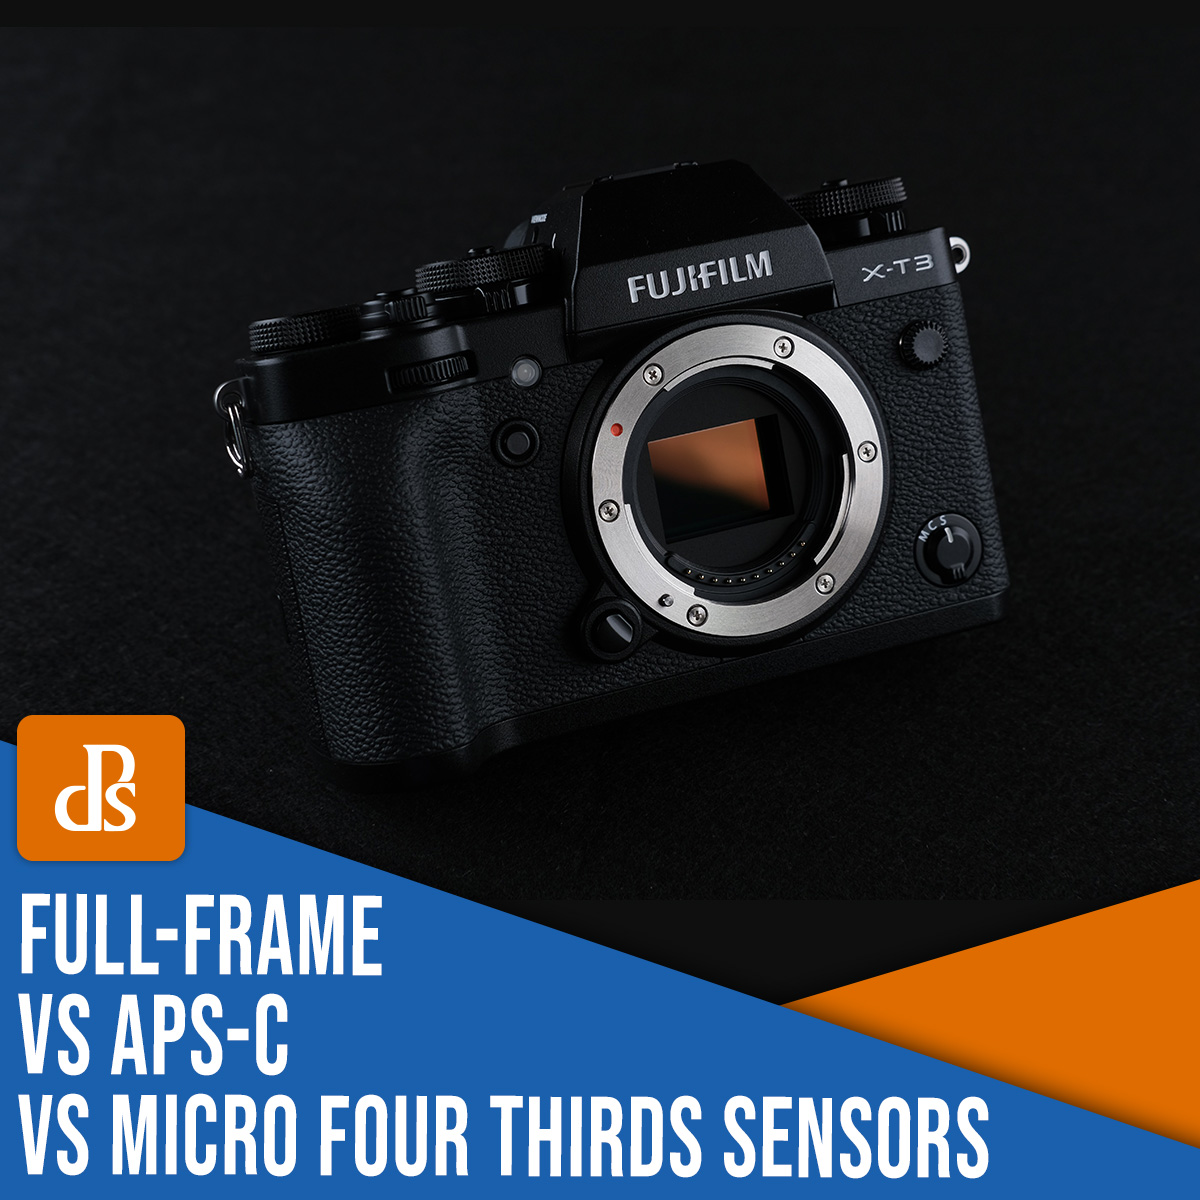 full-frame vs APS-C vs Micro Four Thirds camera sensors explained